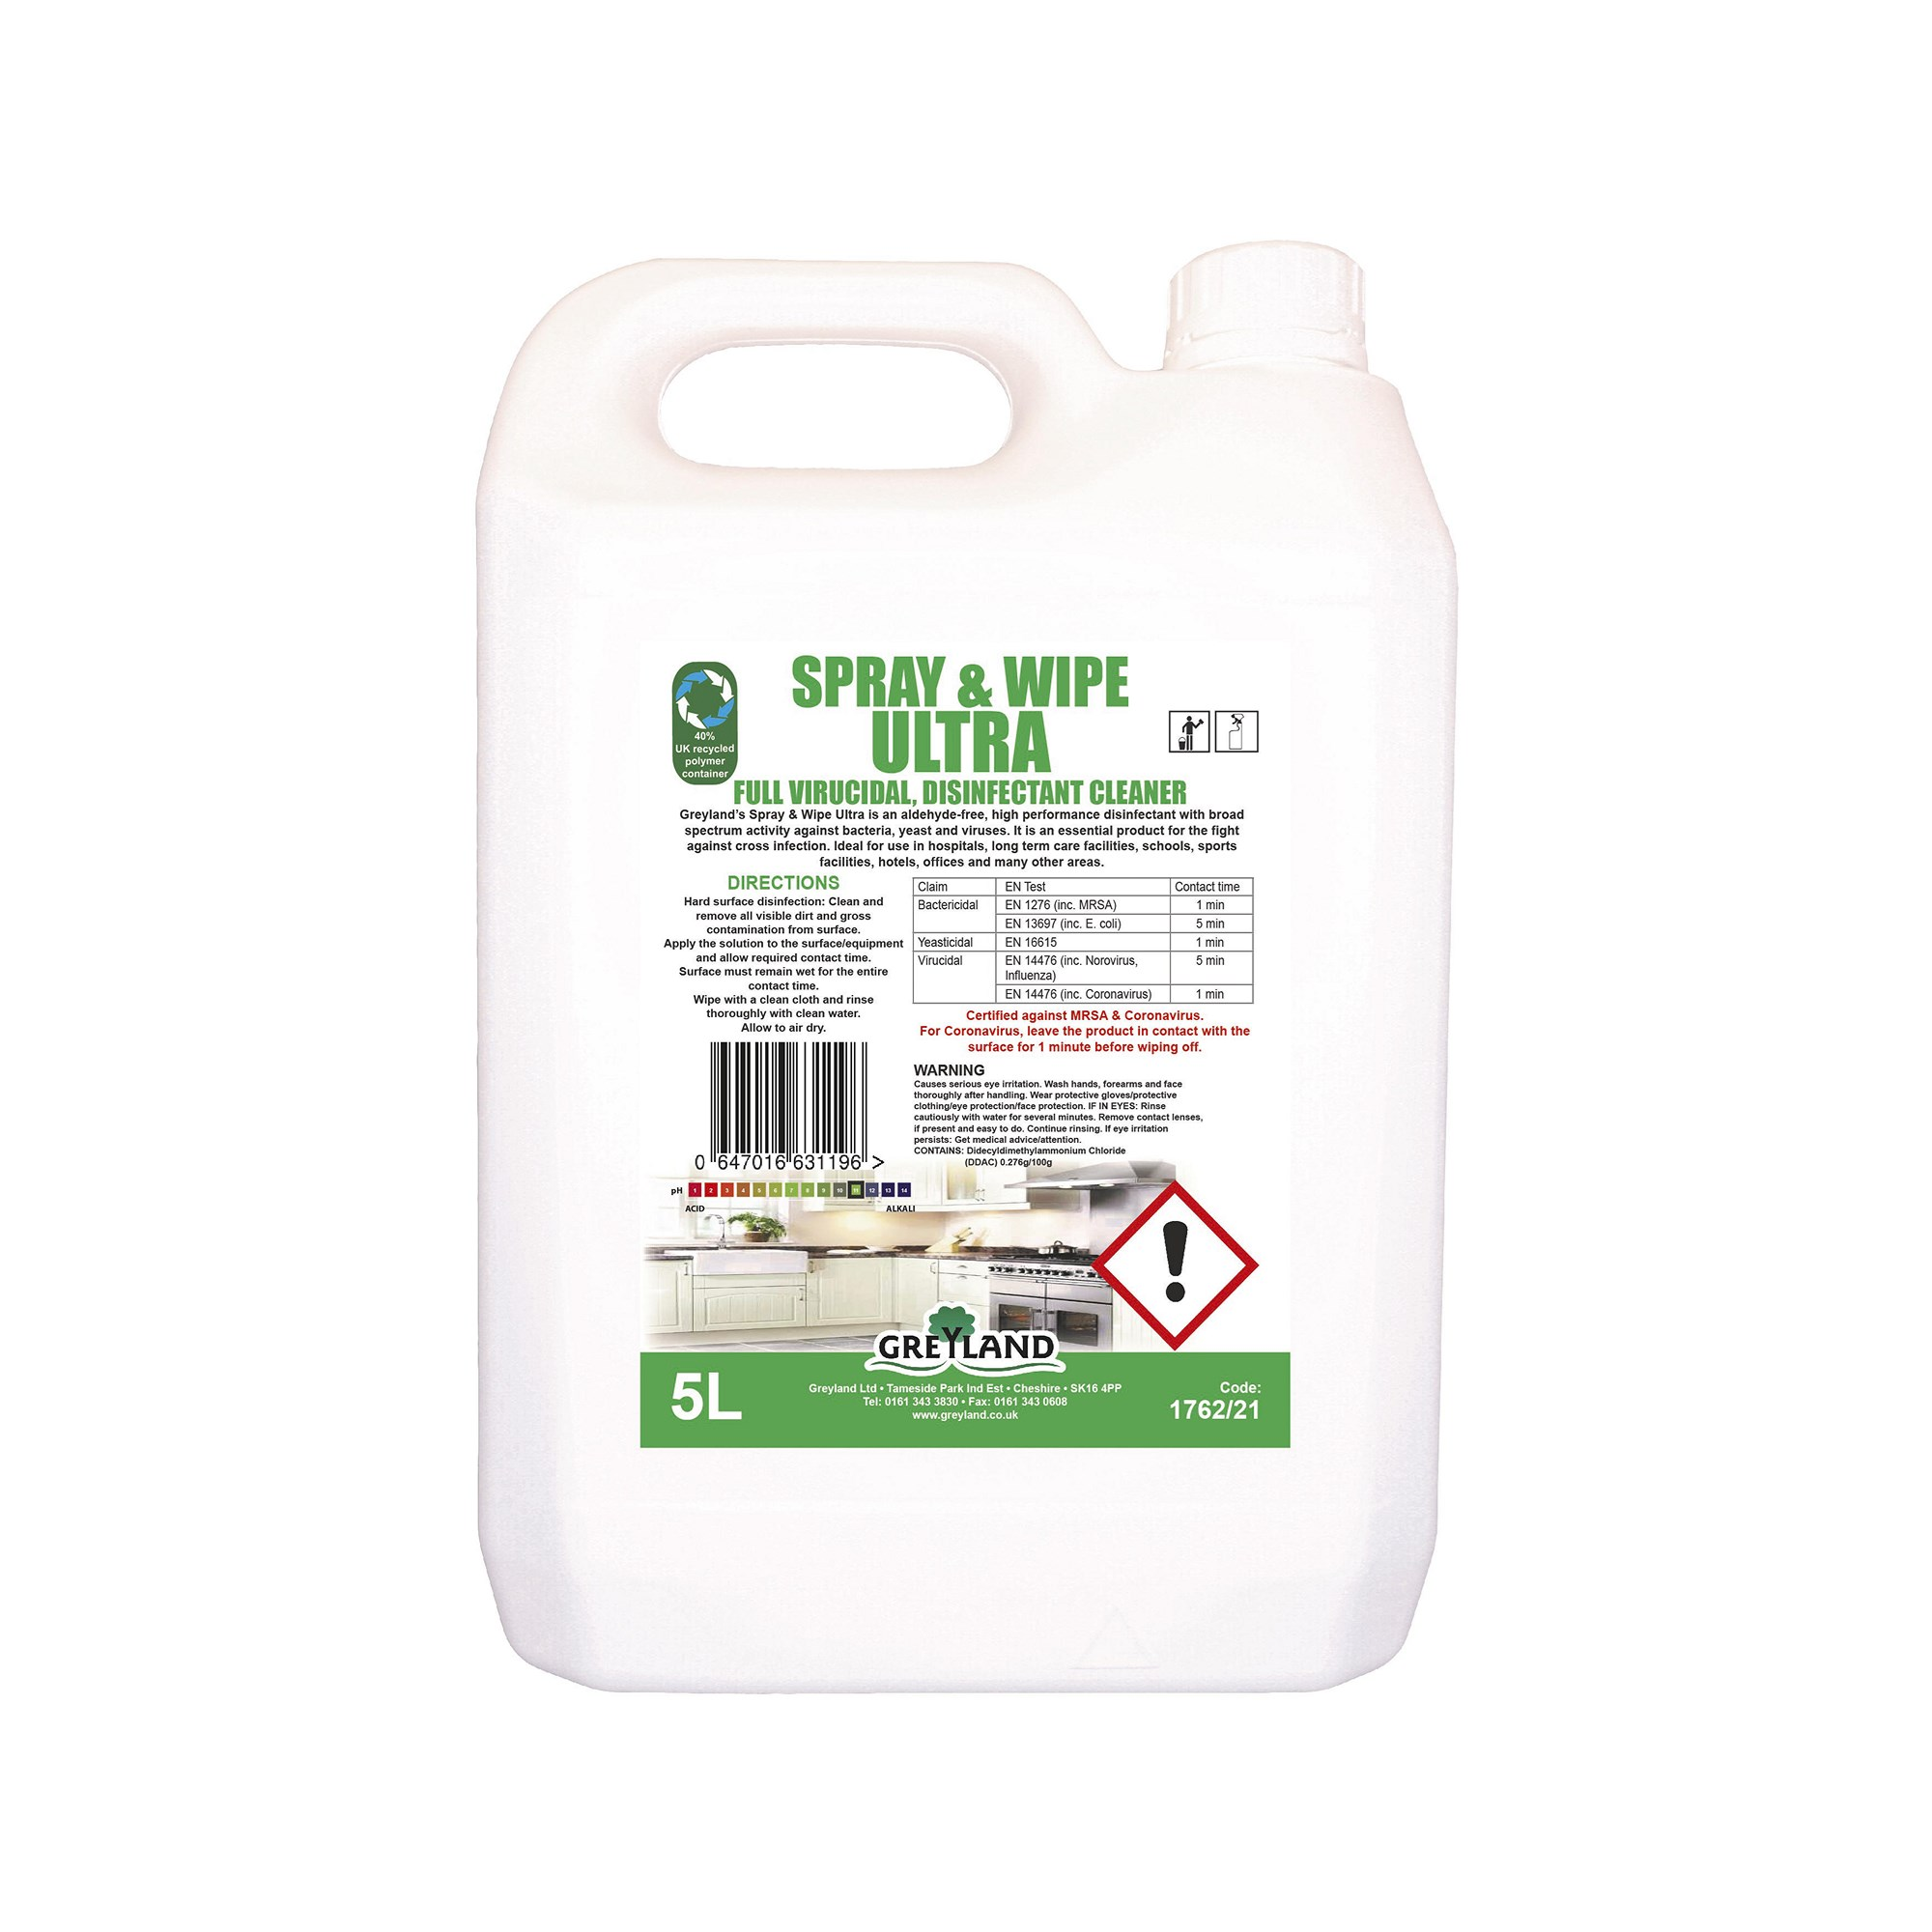 Greyland Spray and Wipe Virucidal Cleaner 5 Litres (Pack of 2)